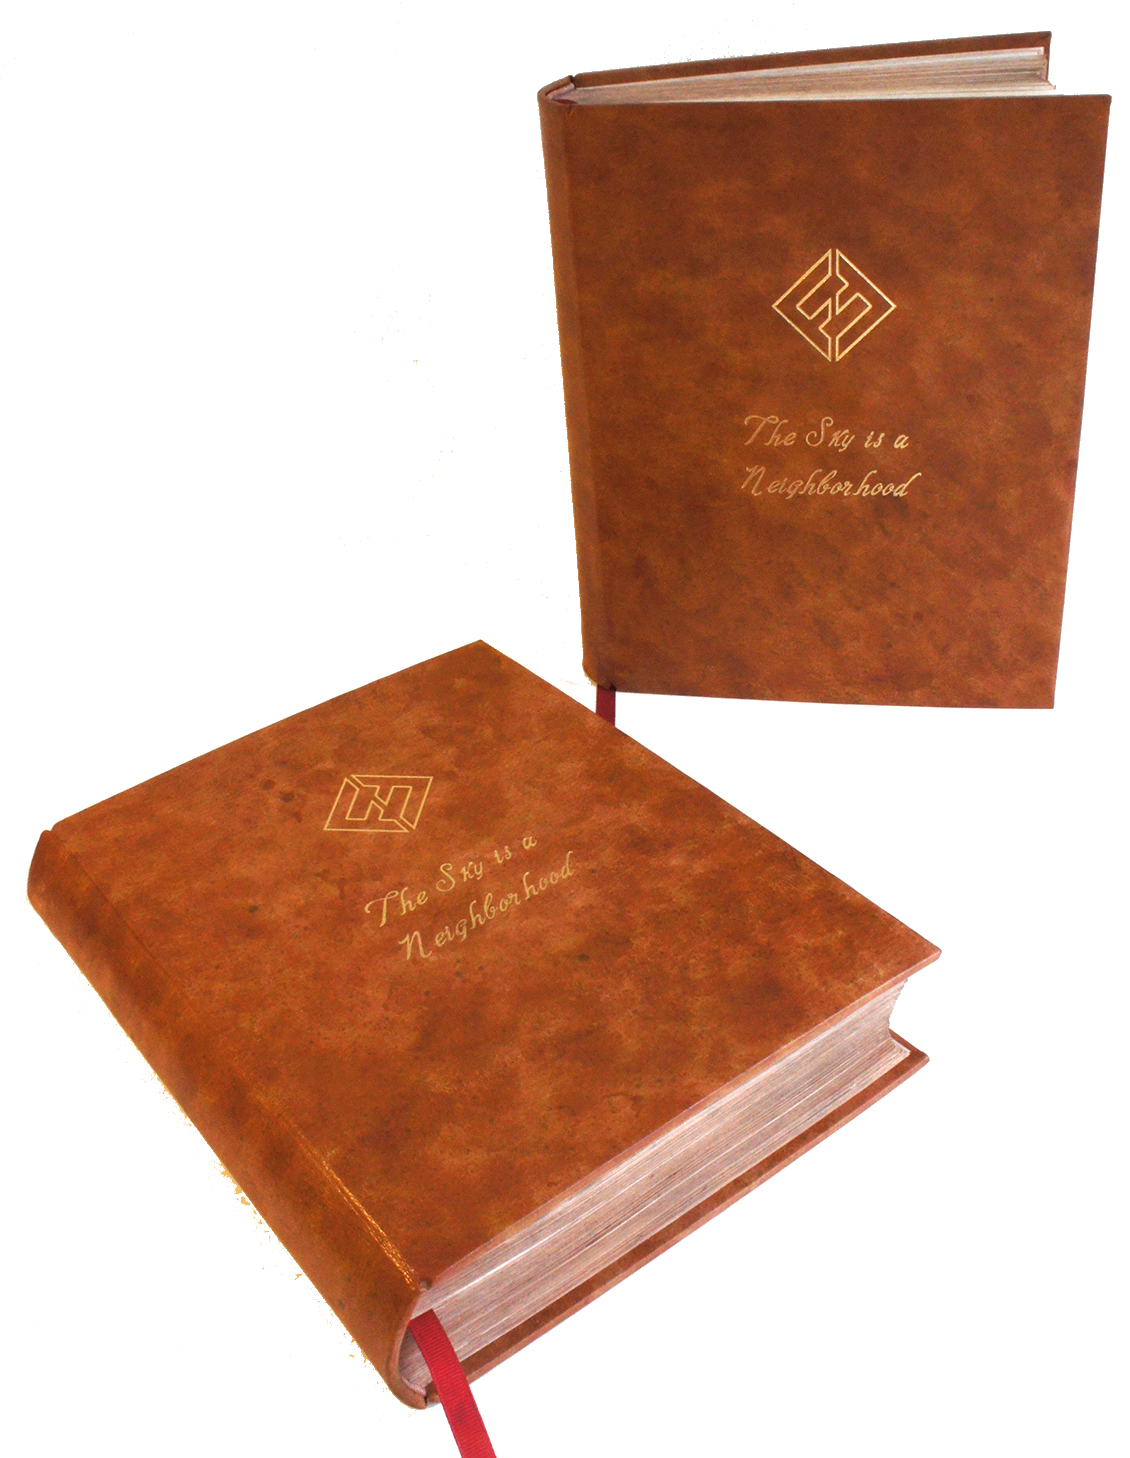 leather binding, gold stamping